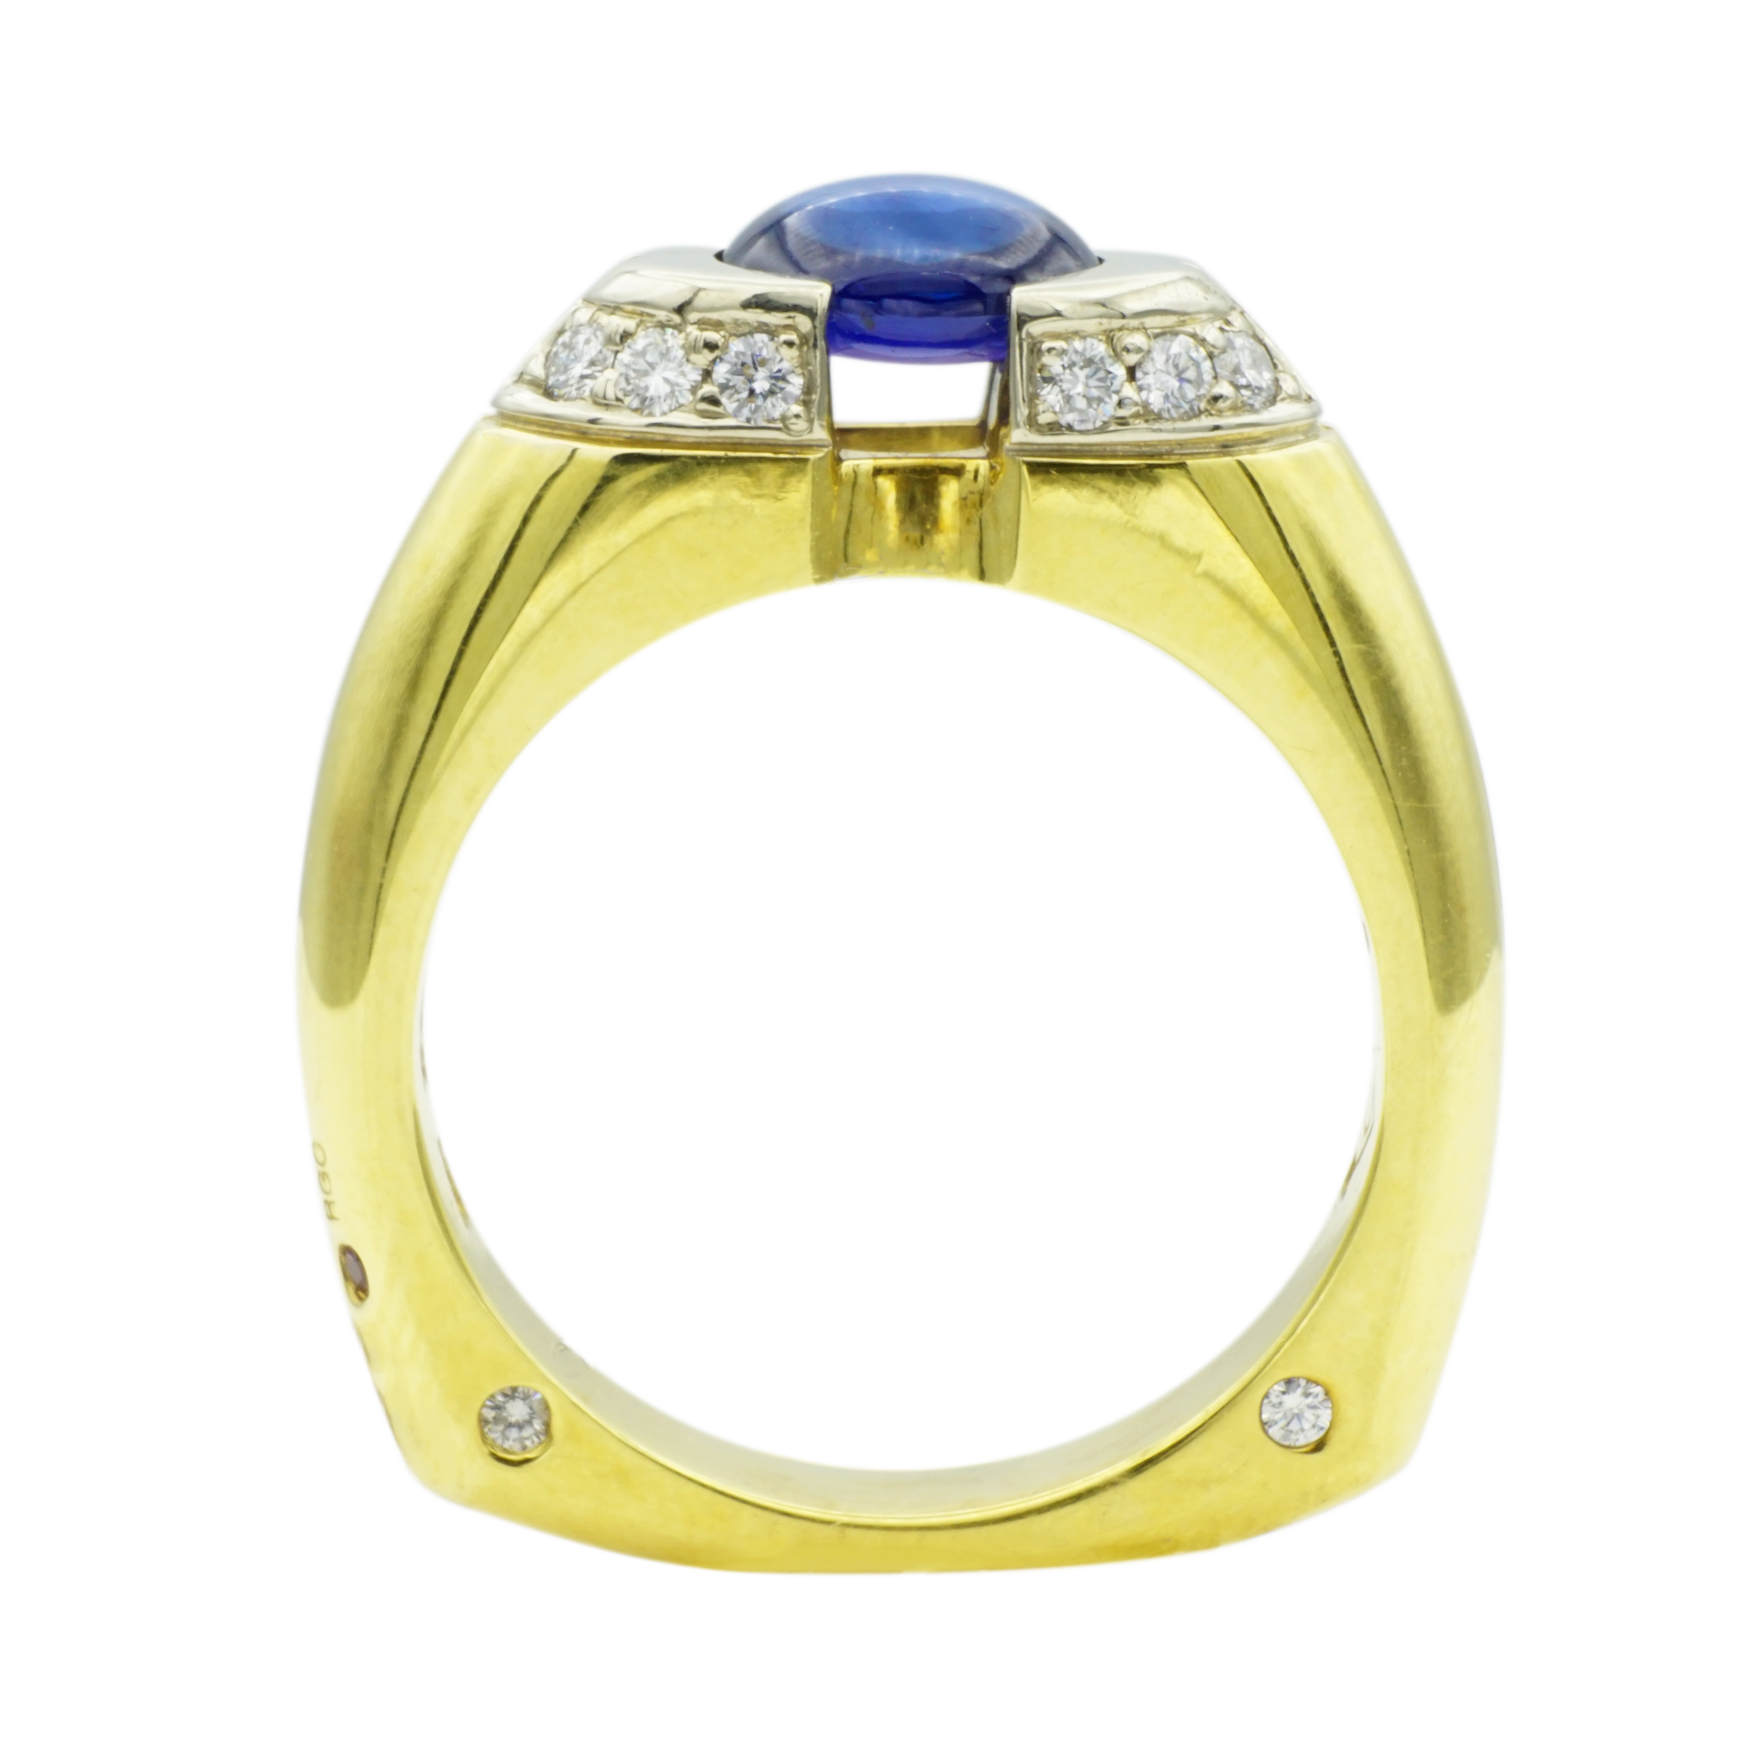 Platinum & Yellow Gold Sapphire Men's Ring by RGC - Front View